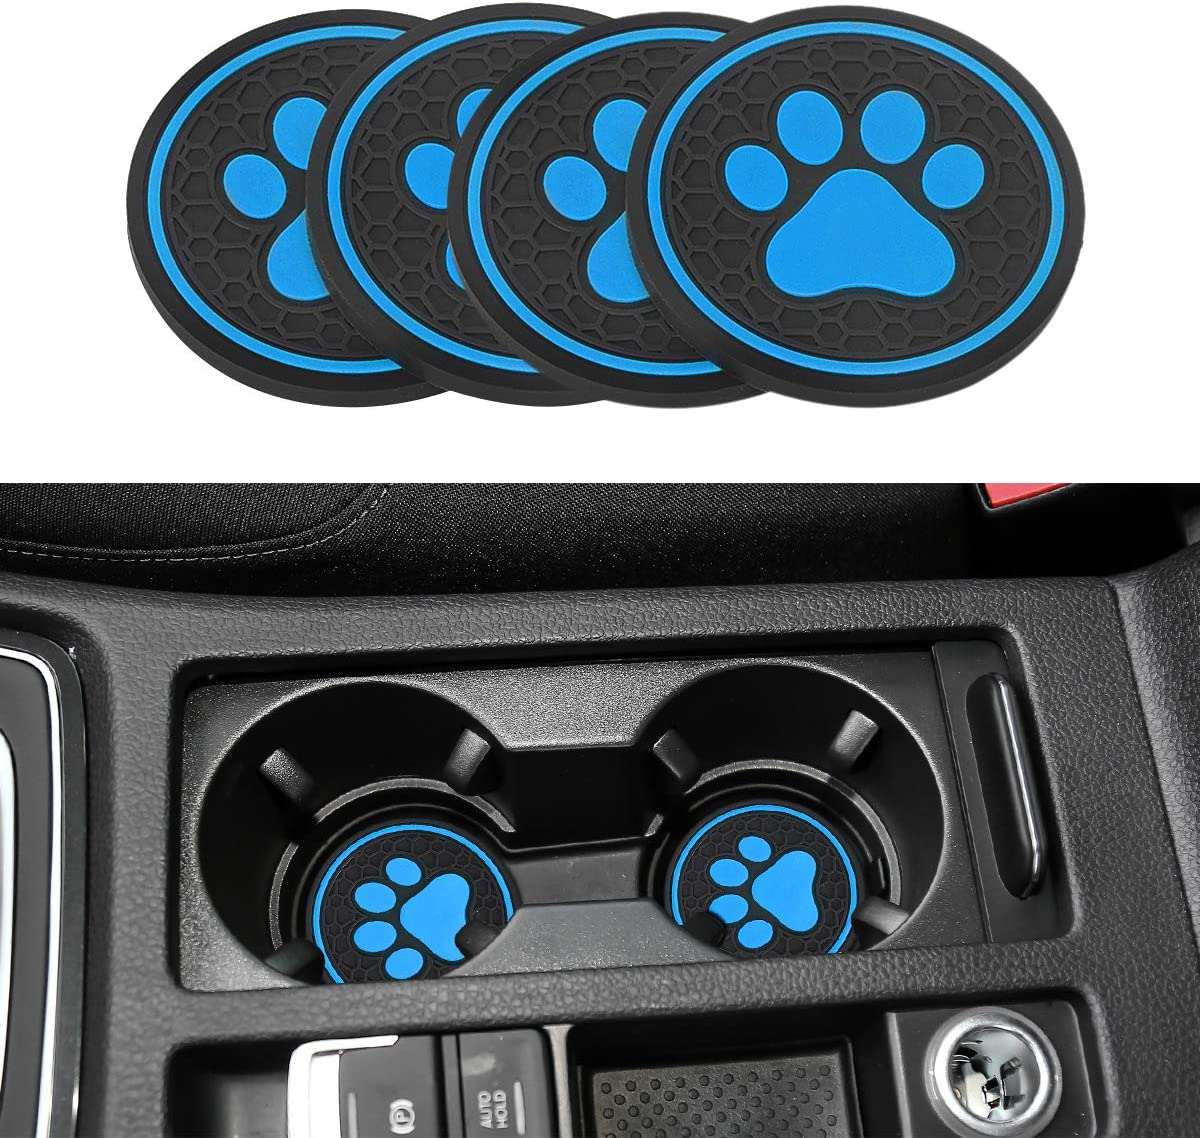 Discount is also underway Universal Fit Dog Paw Cup Holder Coaster D for Cars Pad Mats Beauty products Can